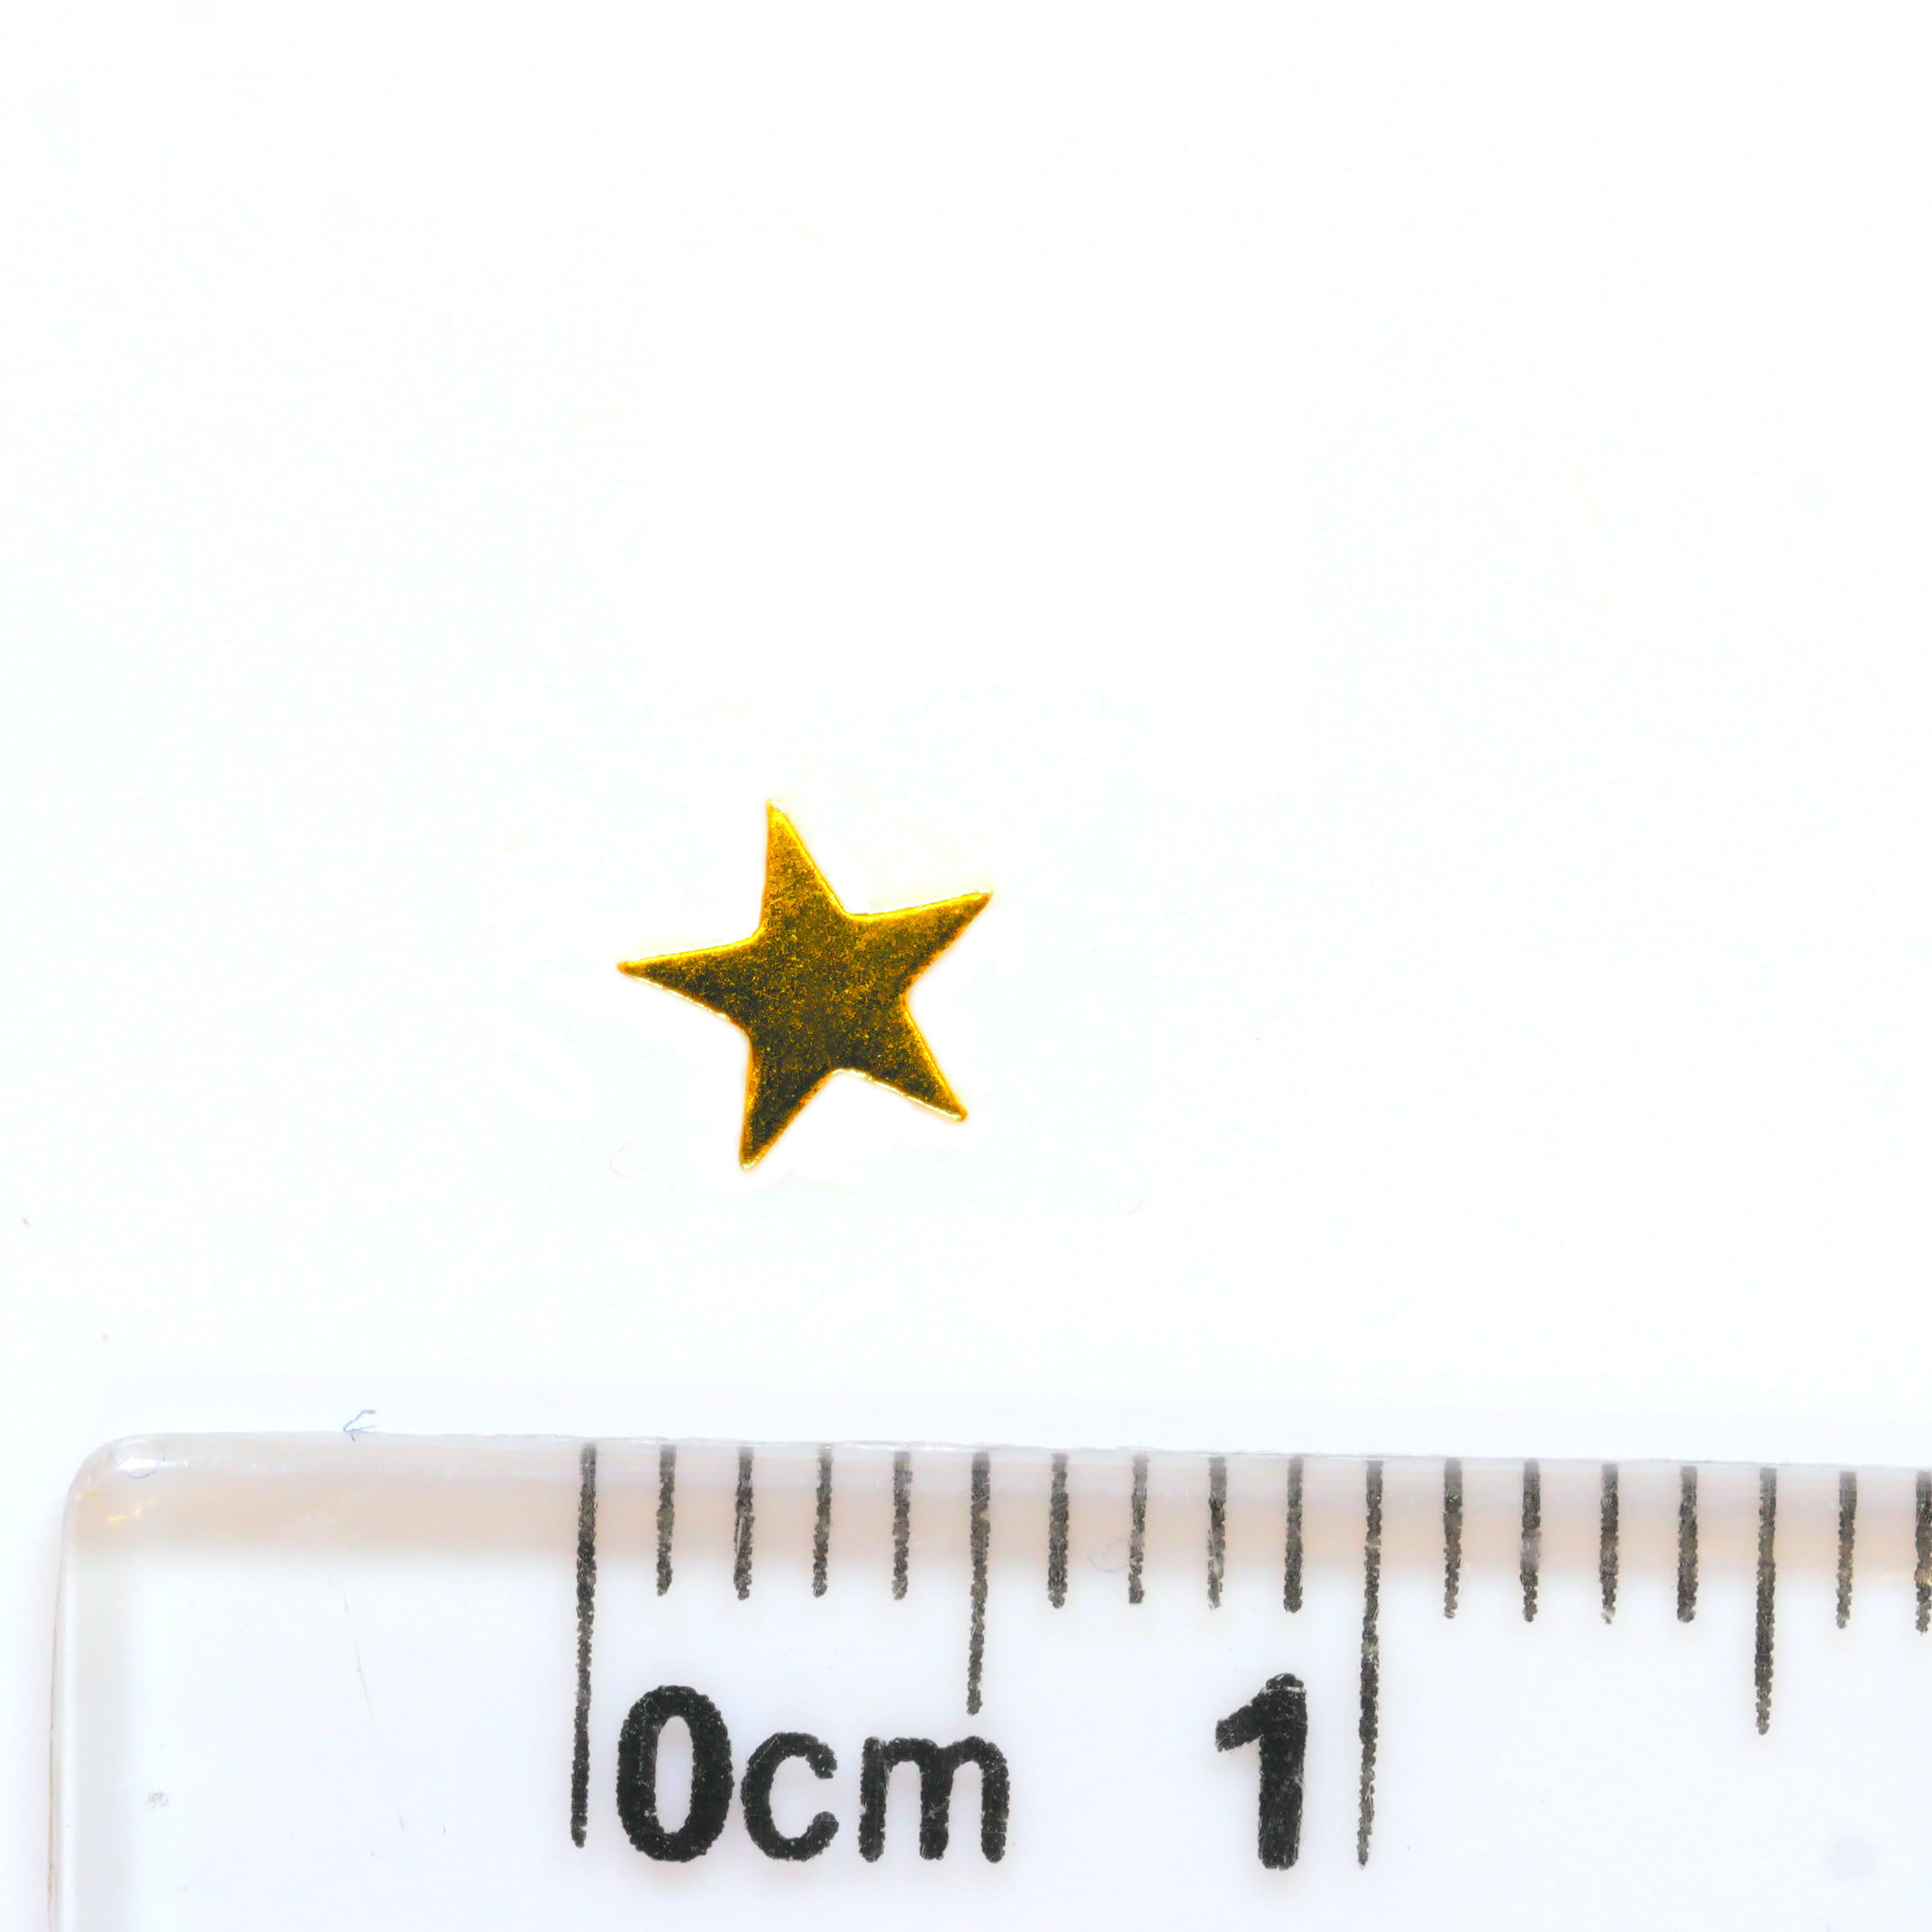 Small star earrings in 9ct yellow gold with ruler